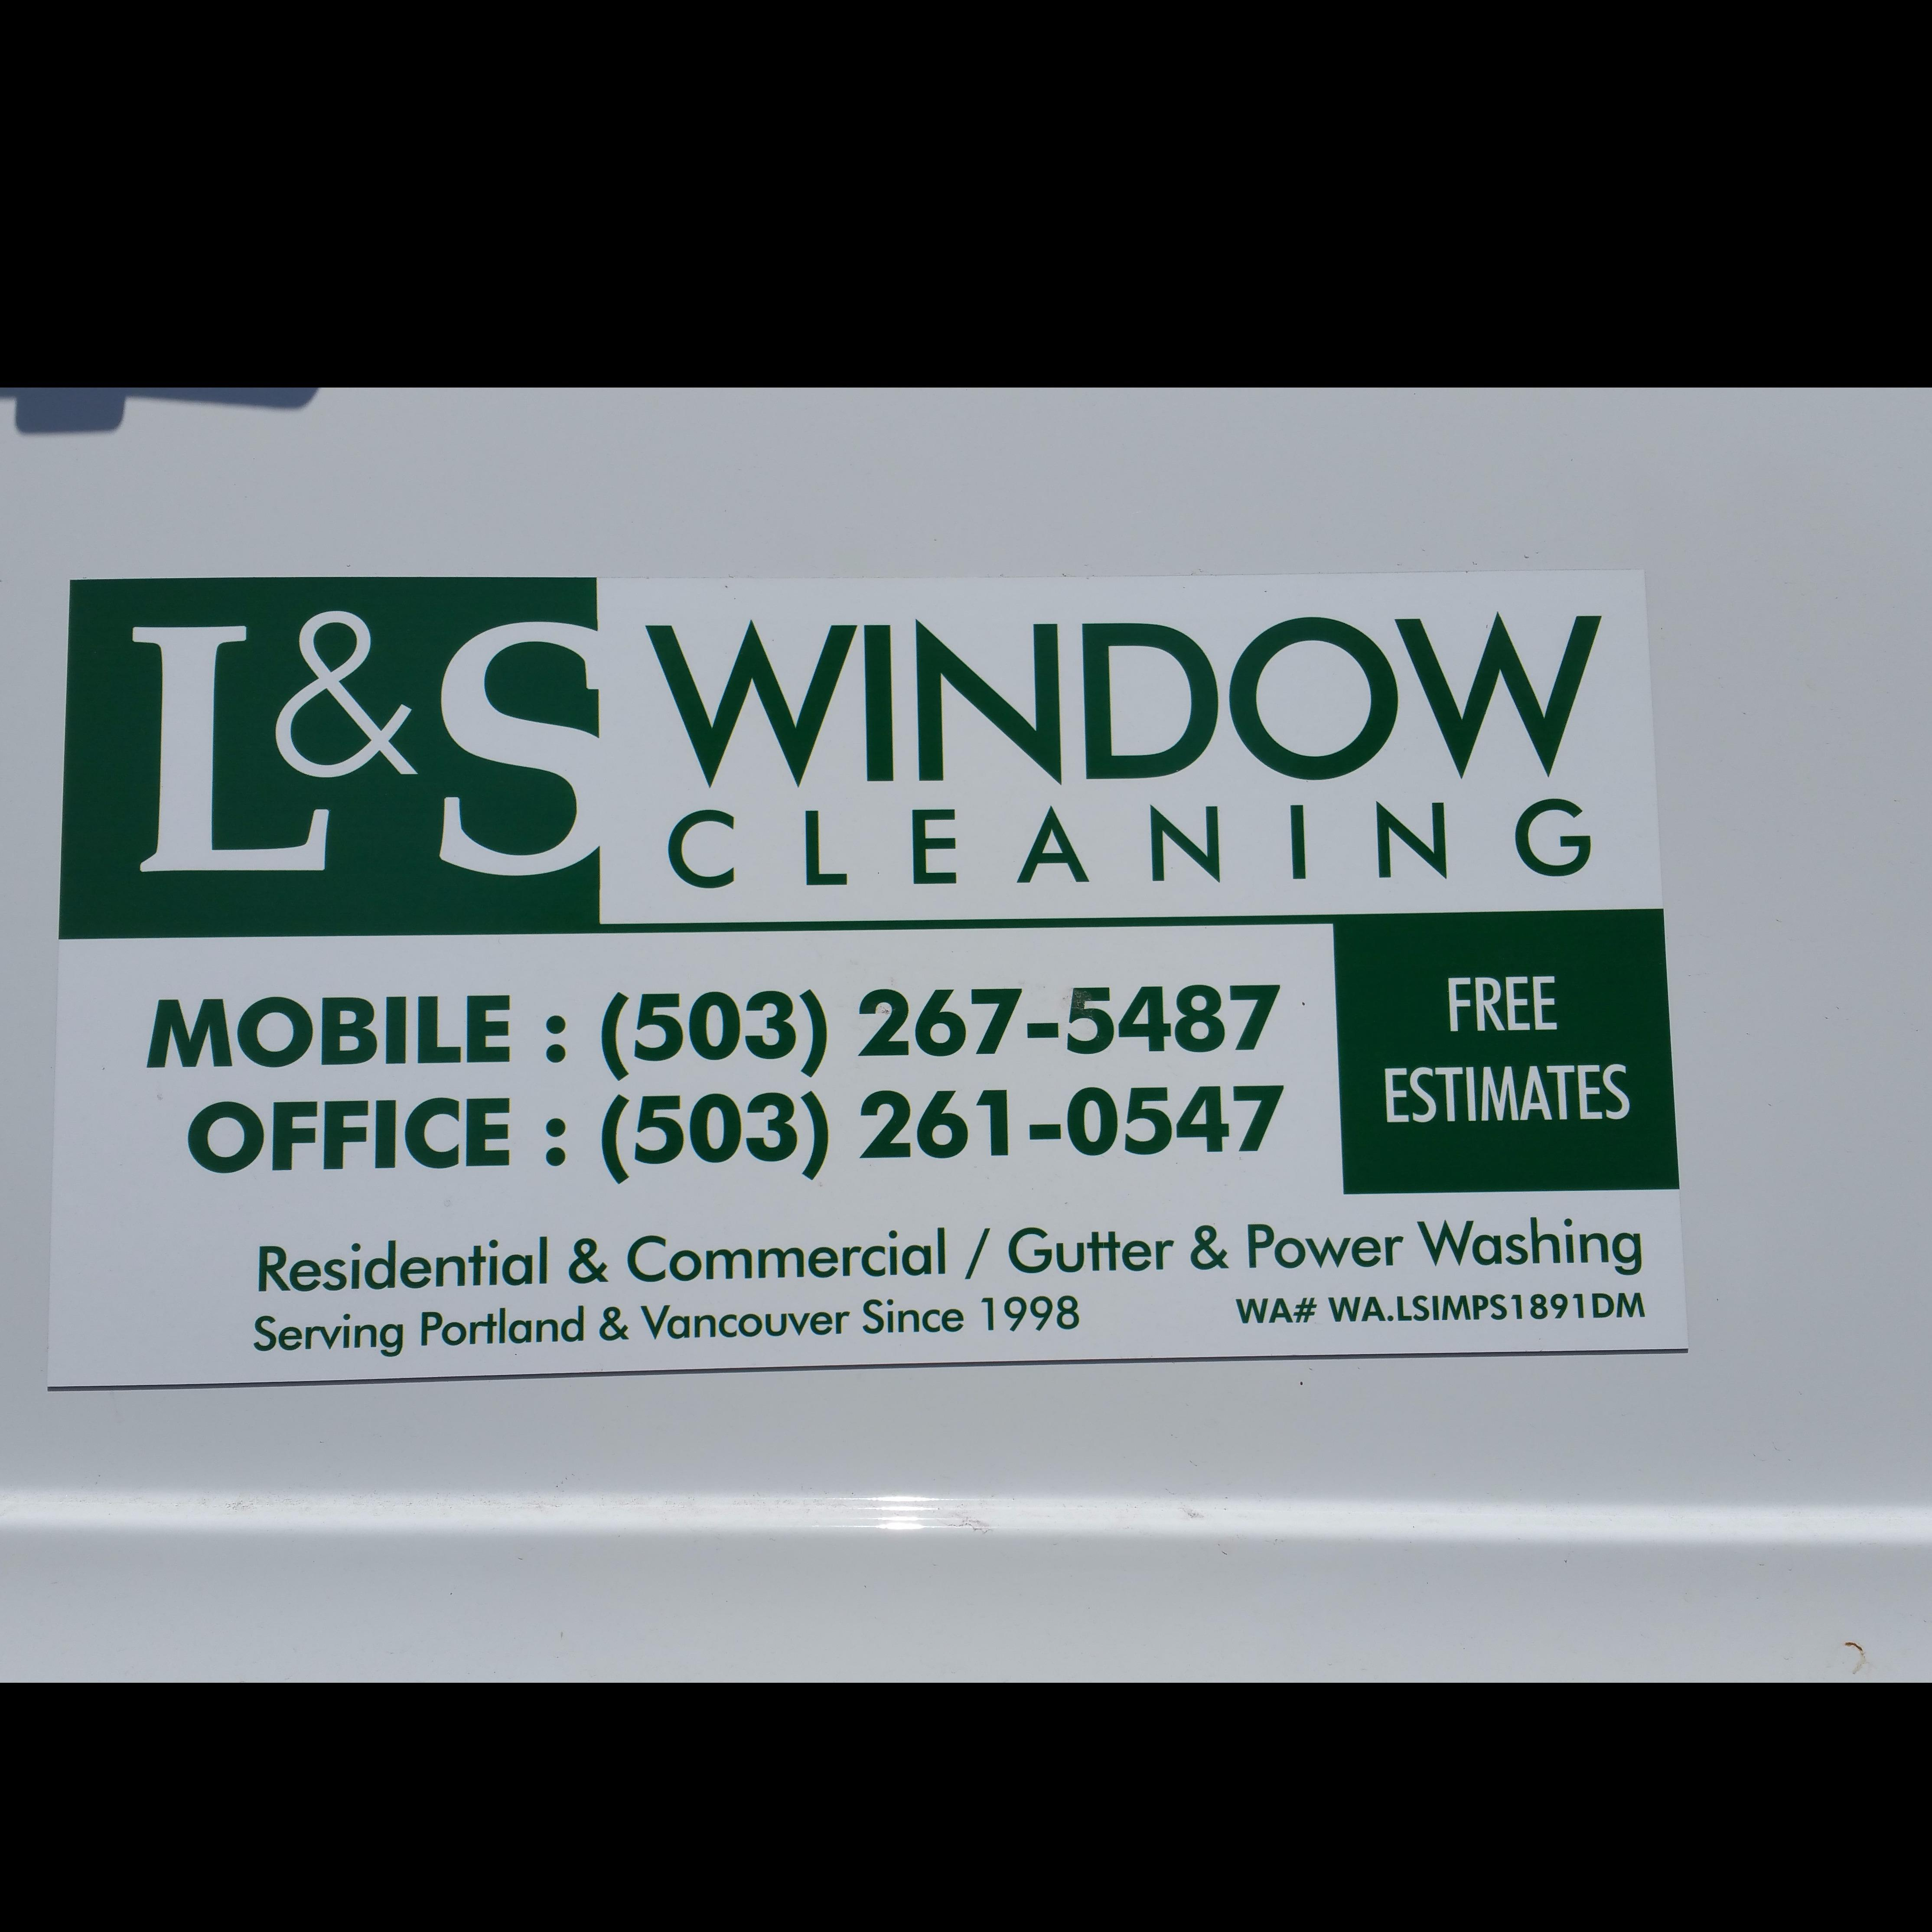 L & S Window Cleaning